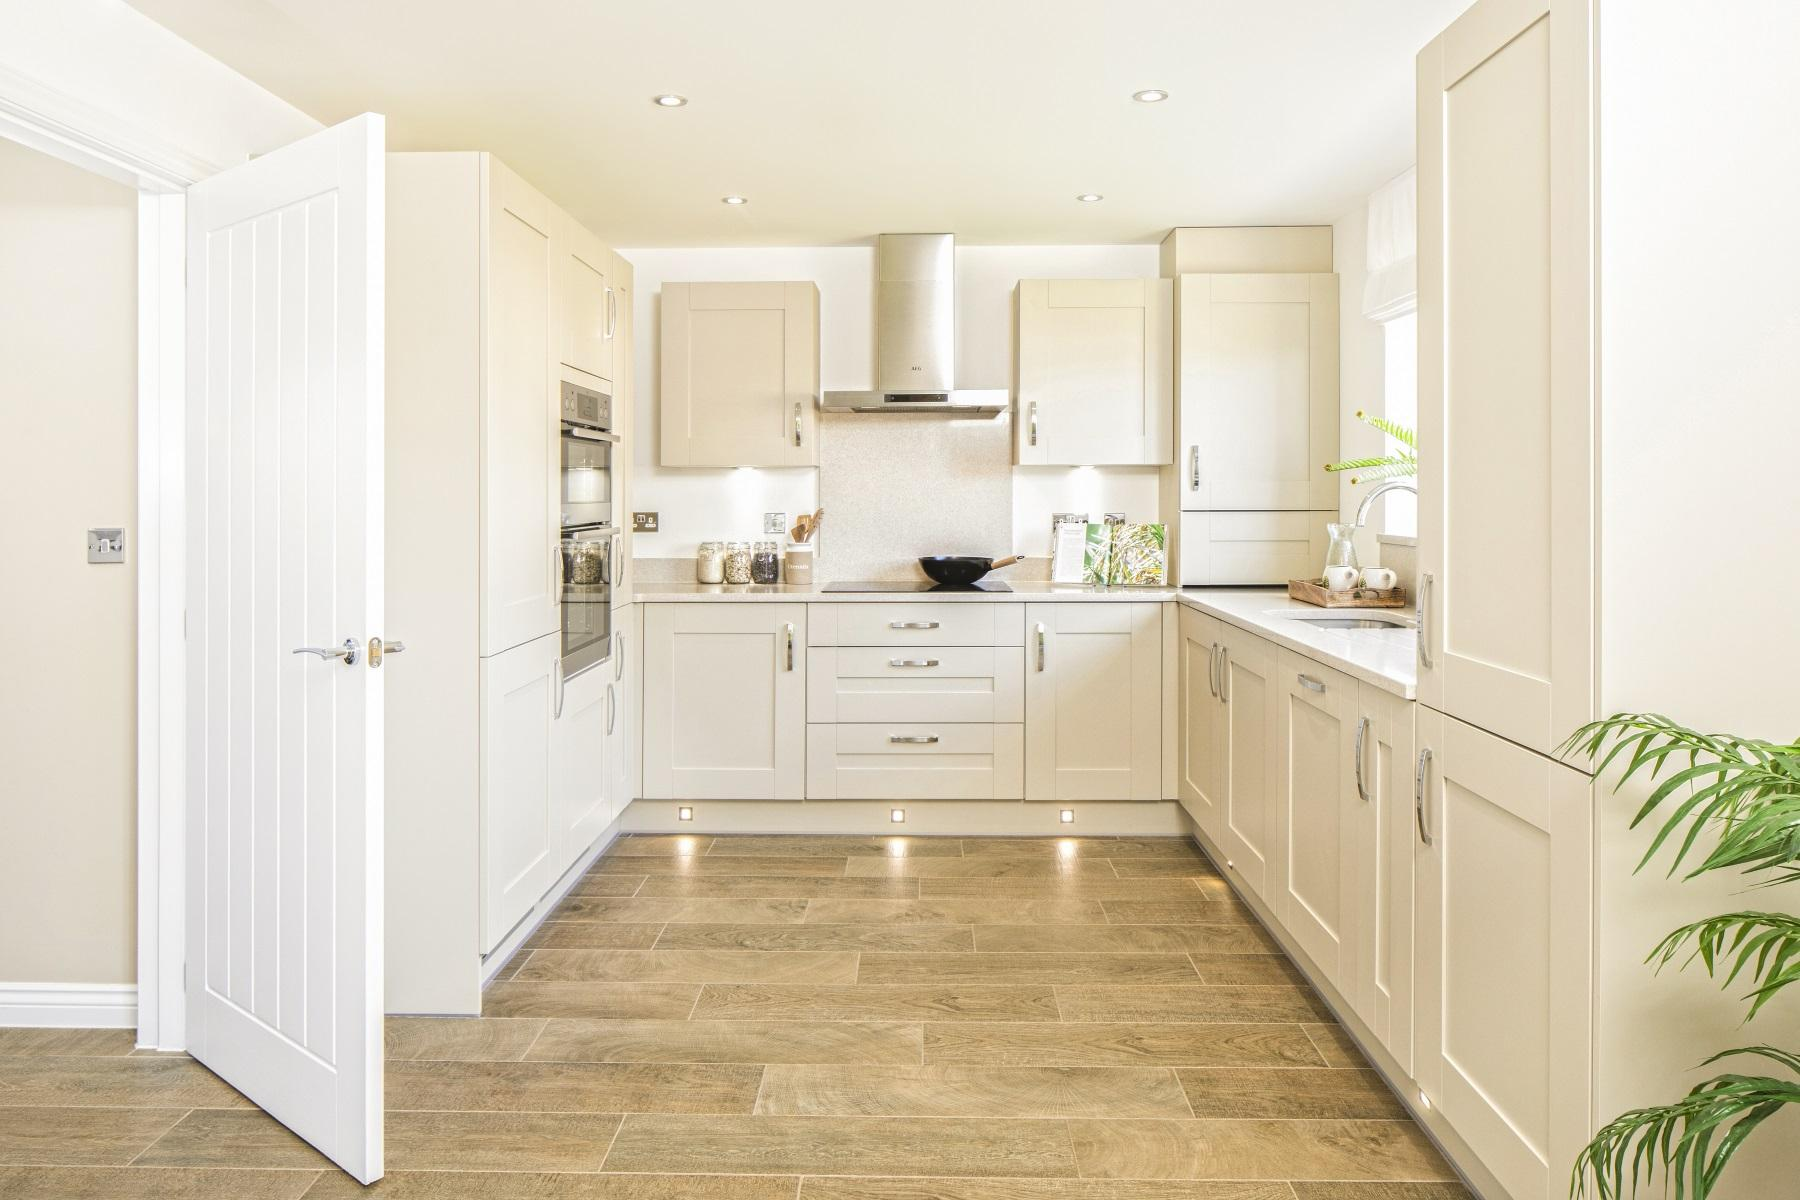 TW Exeter - Chy An Dowr - Shelford example kitchen